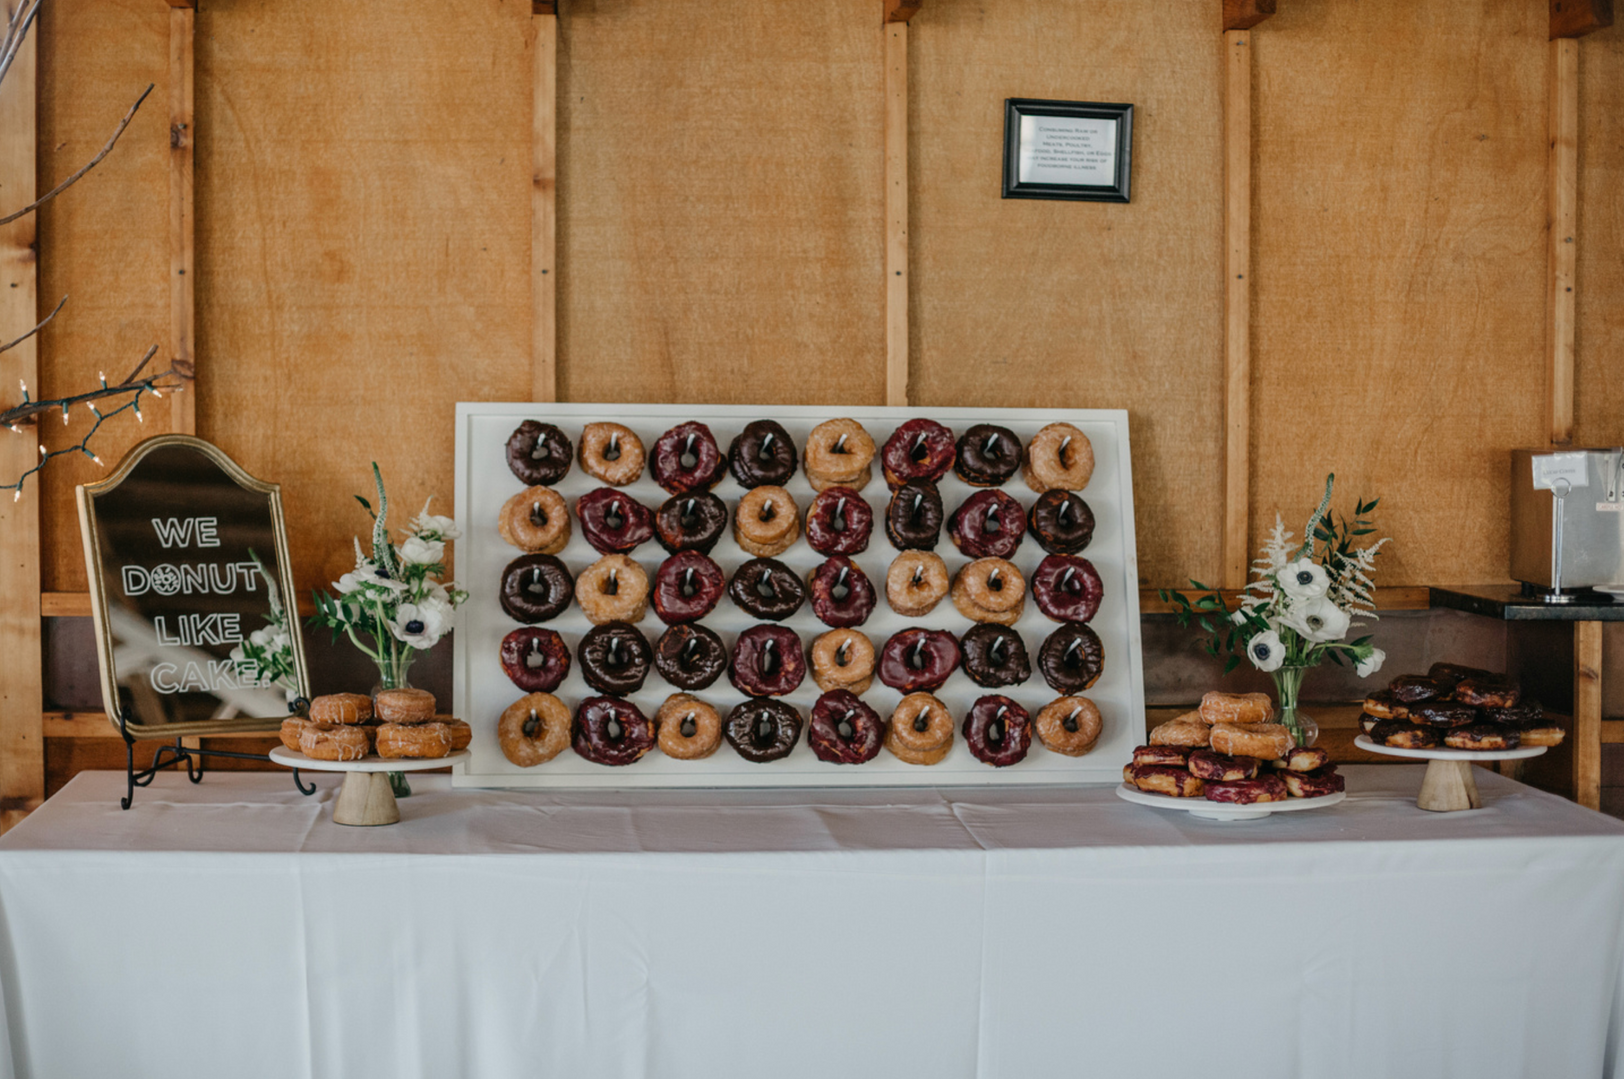 DONUT WALL + CAKE STANDS